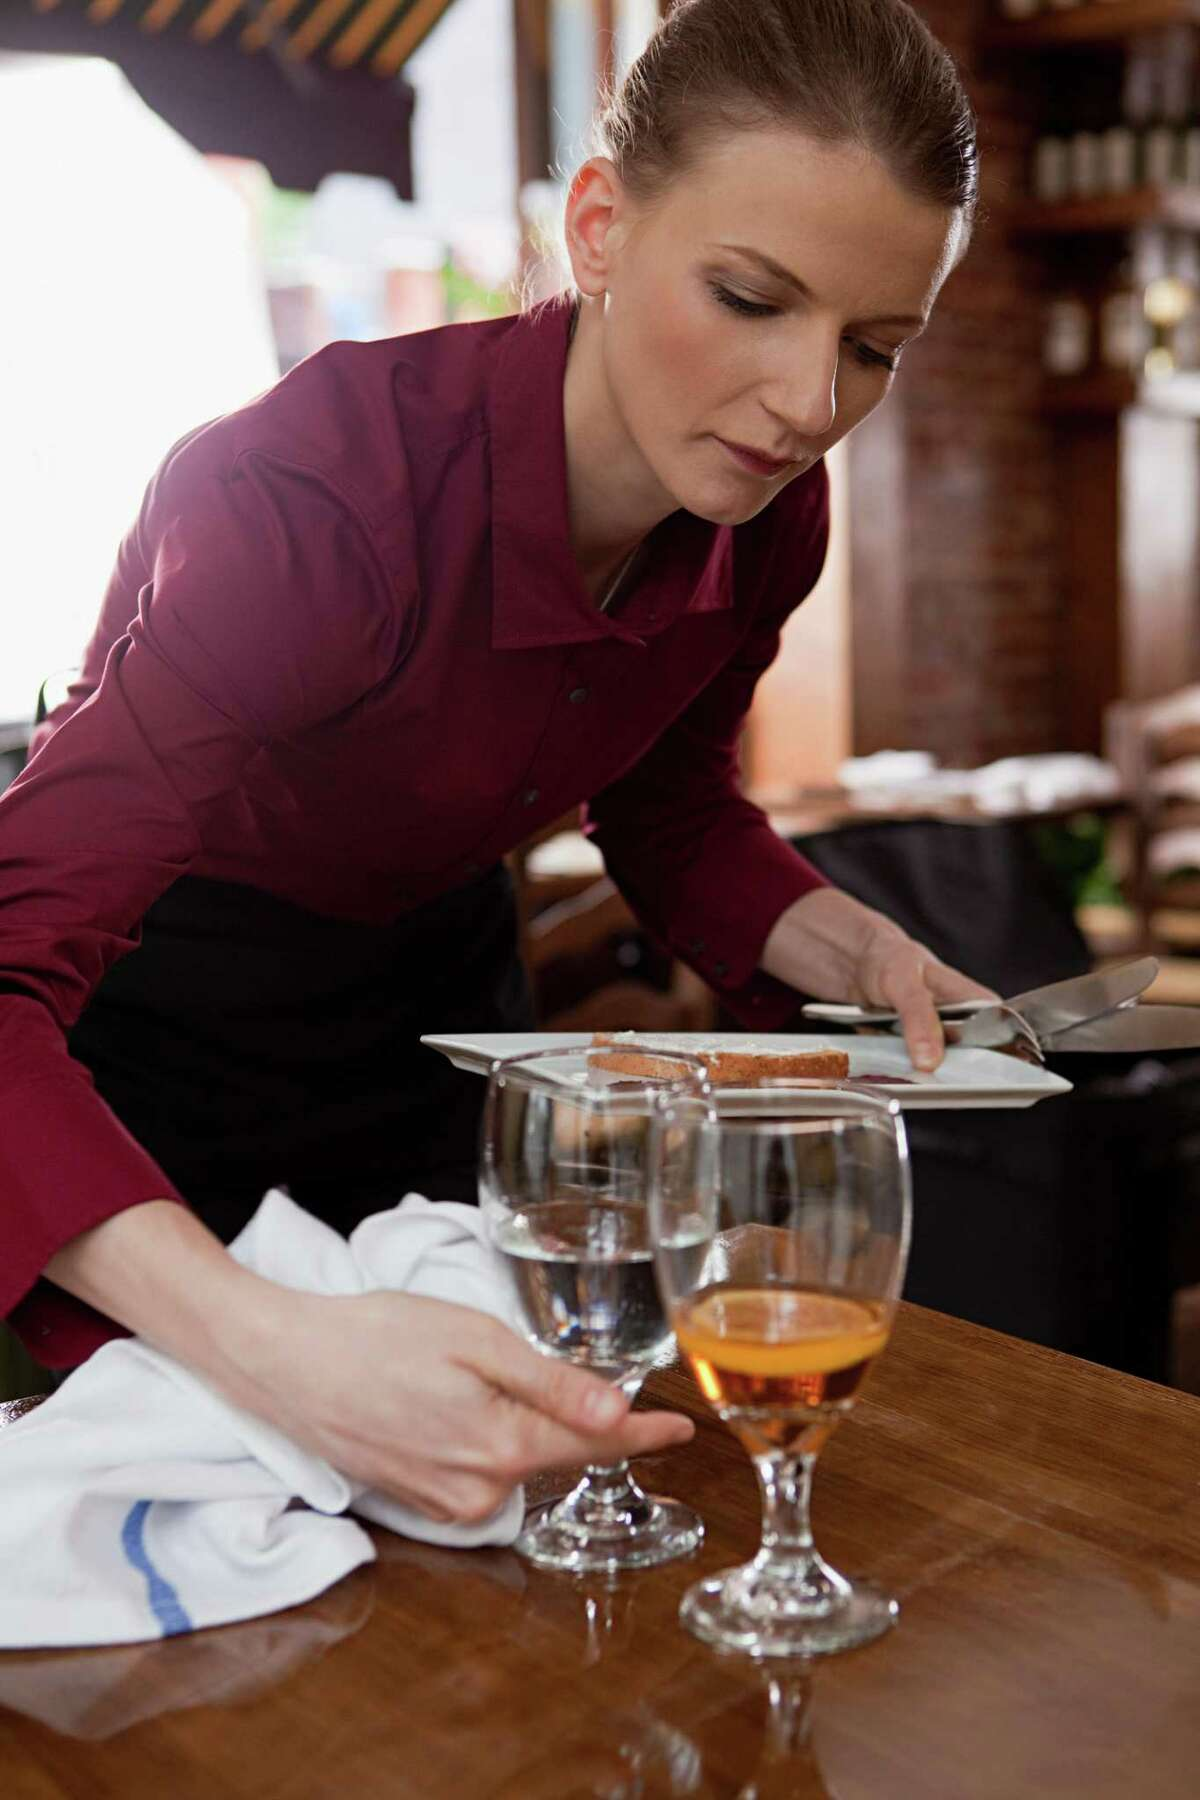 9 reasons why your S.A. server hates youYou sit at unclean tables. Customers should wait until their table has been completely bused before rushing to sit down.